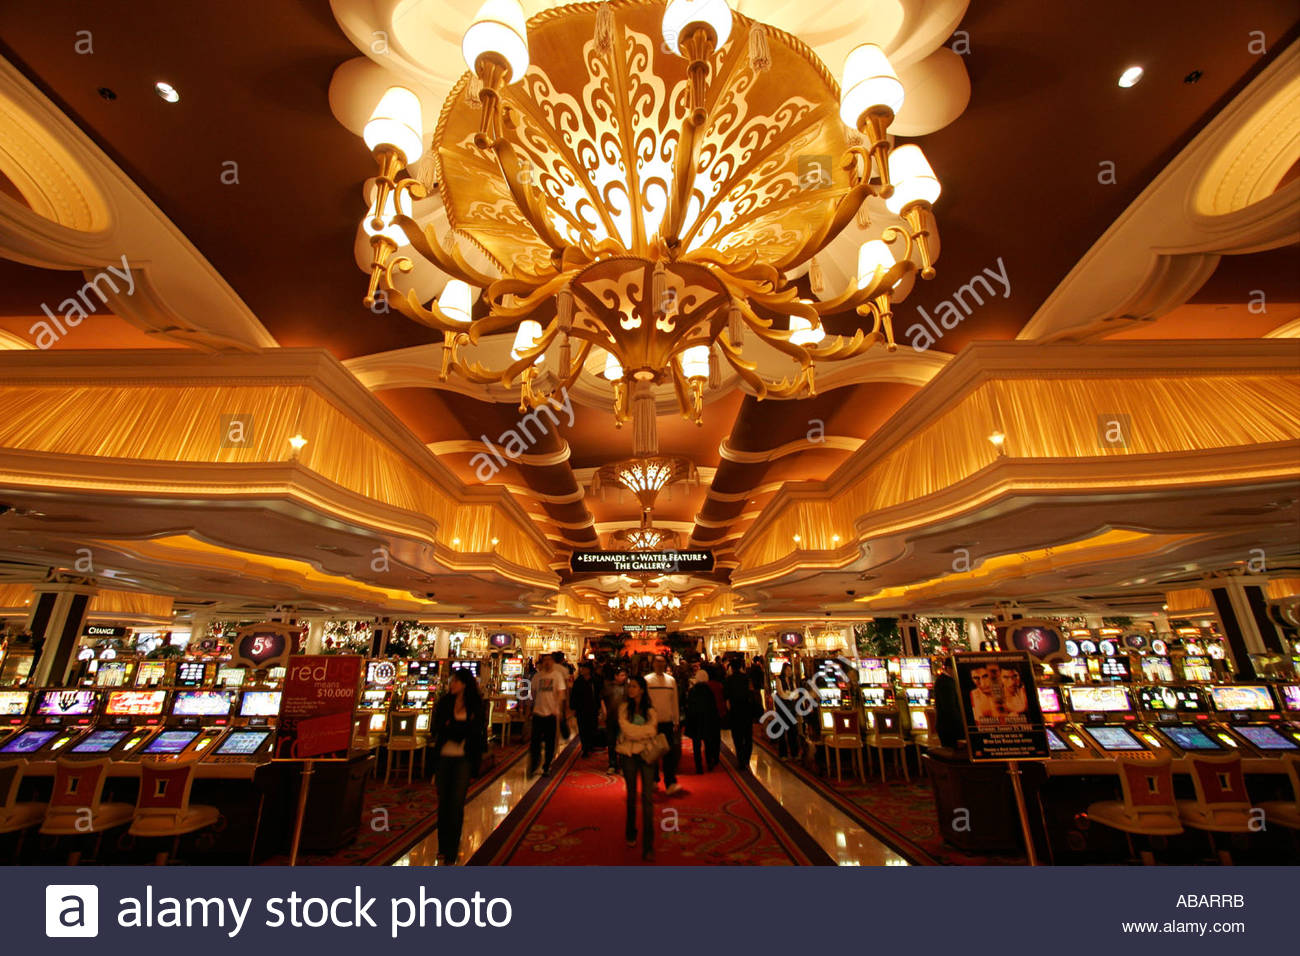 Hall casino at the mgm casino in